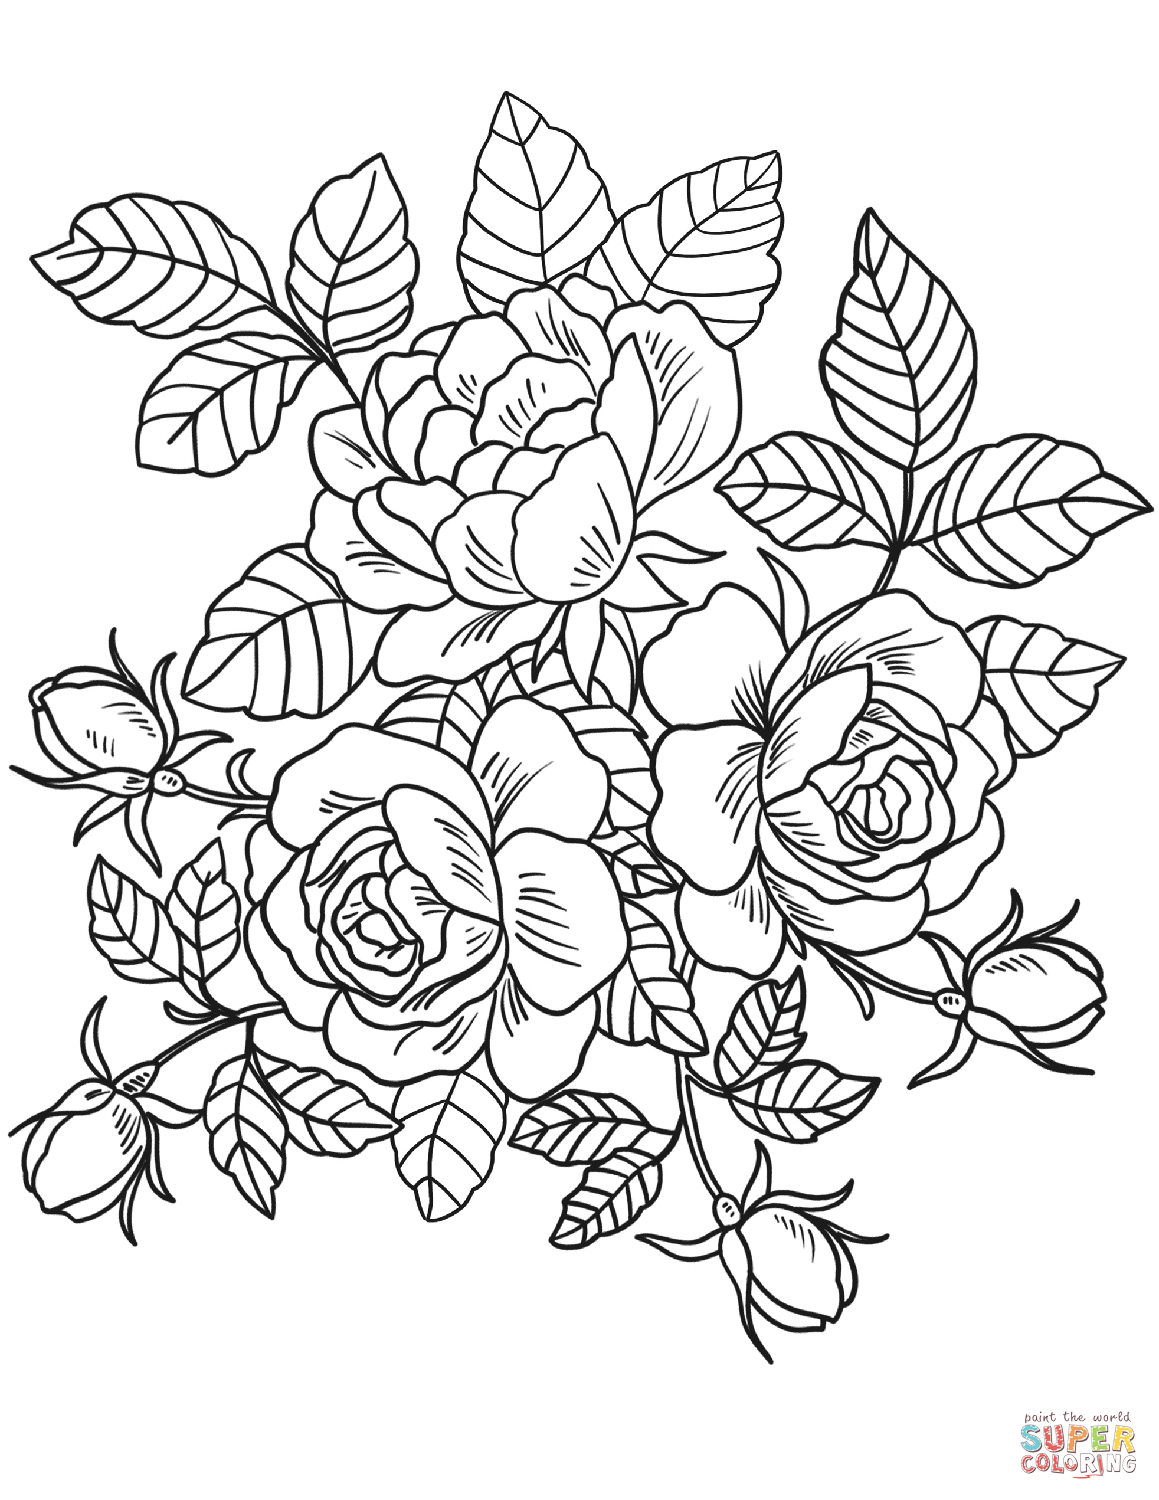 Roses Flowers Coloring Page | Free Printable Coloring Pages - Free Printable Flower Coloring Pages